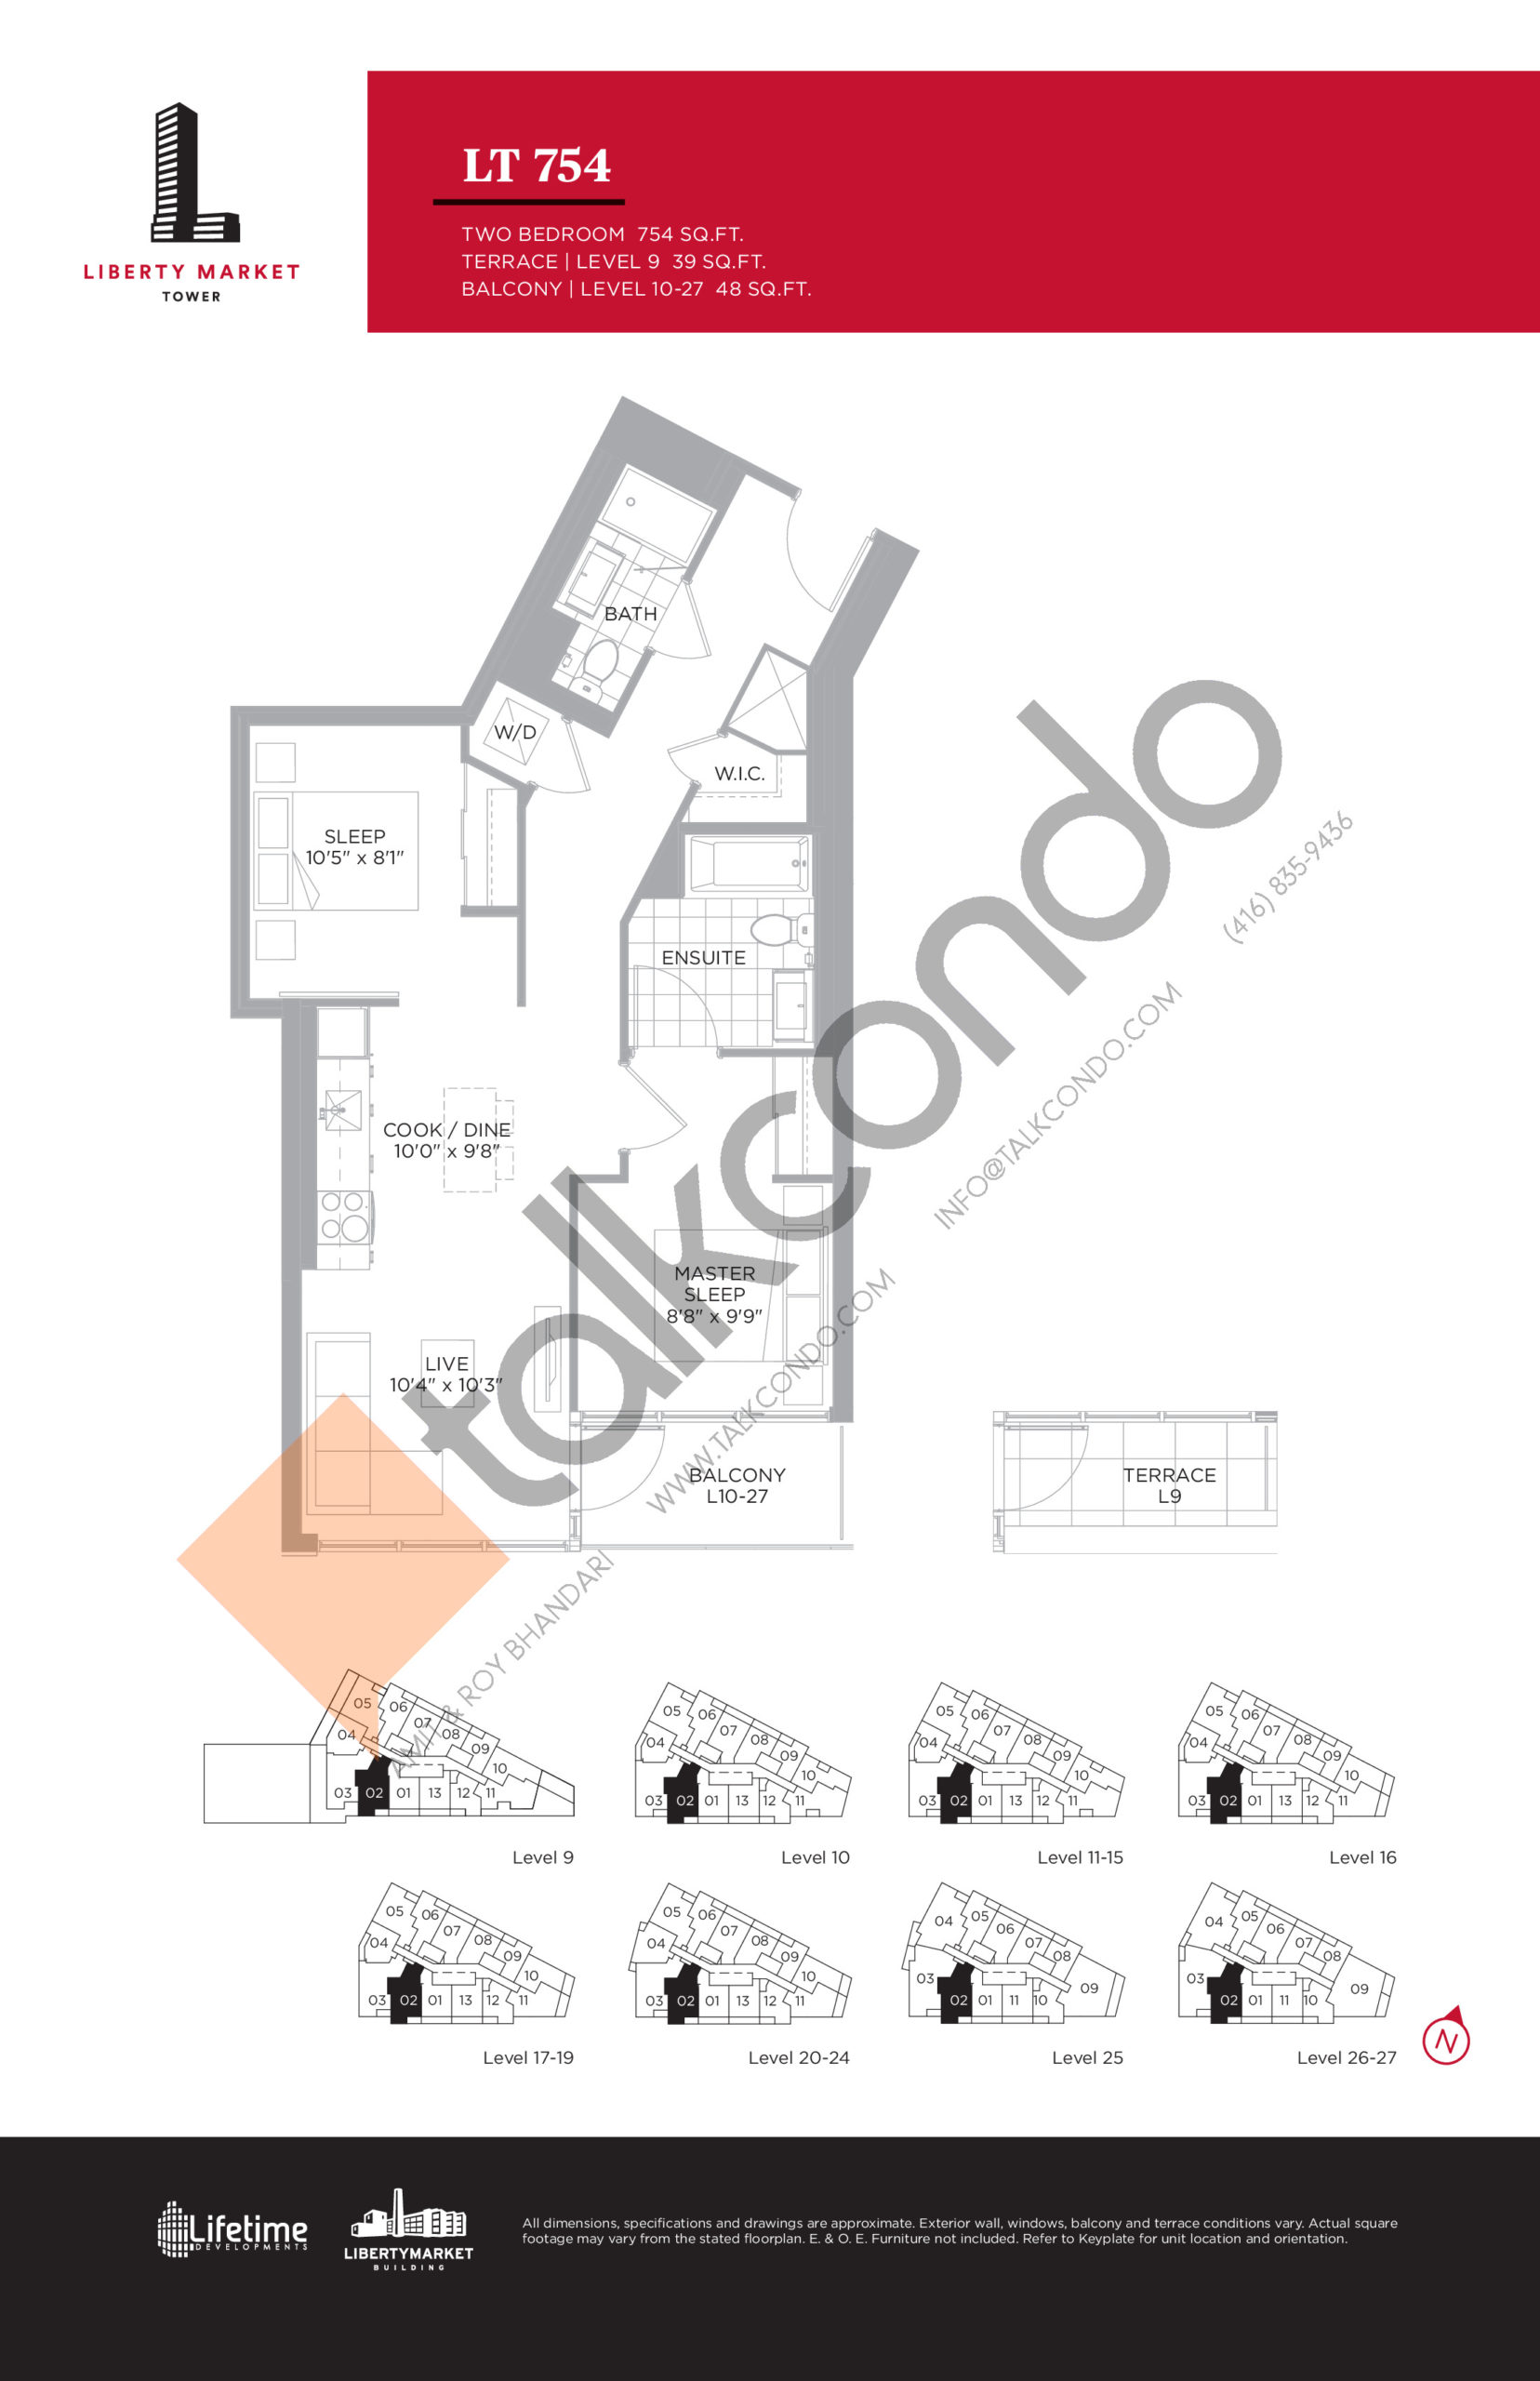 LT 754 - Tower Collection Floor Plan at Liberty Market Tower Condos - 754 sq.ft